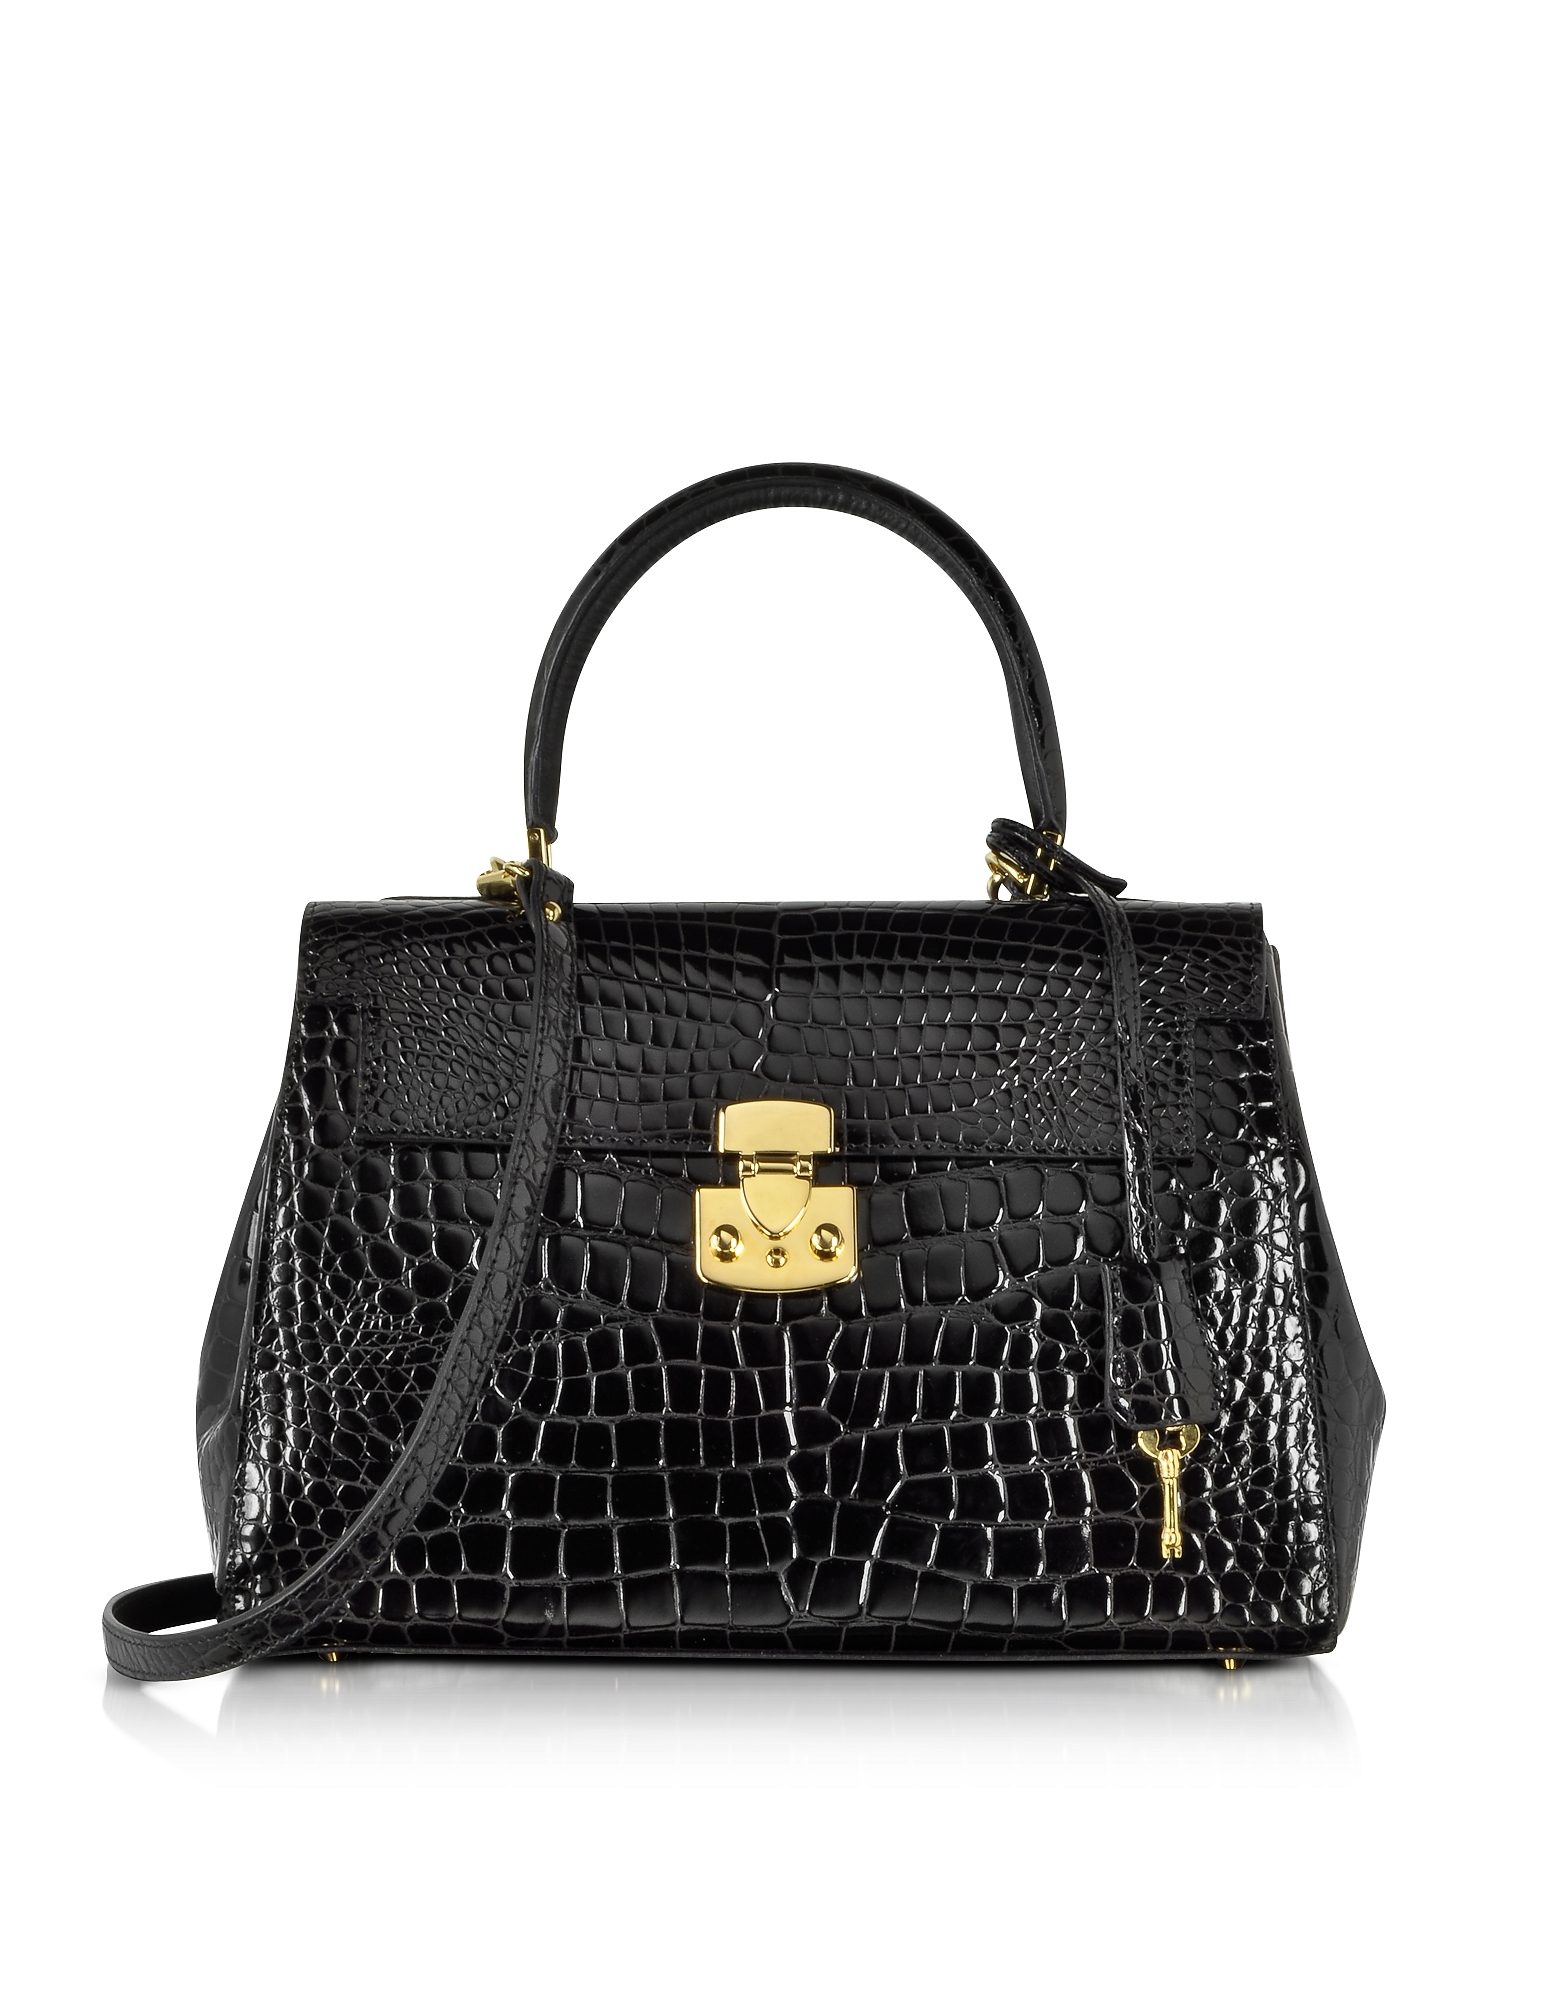 Fontanelli Handbags, Shiny Black croco-style Leather Handbag